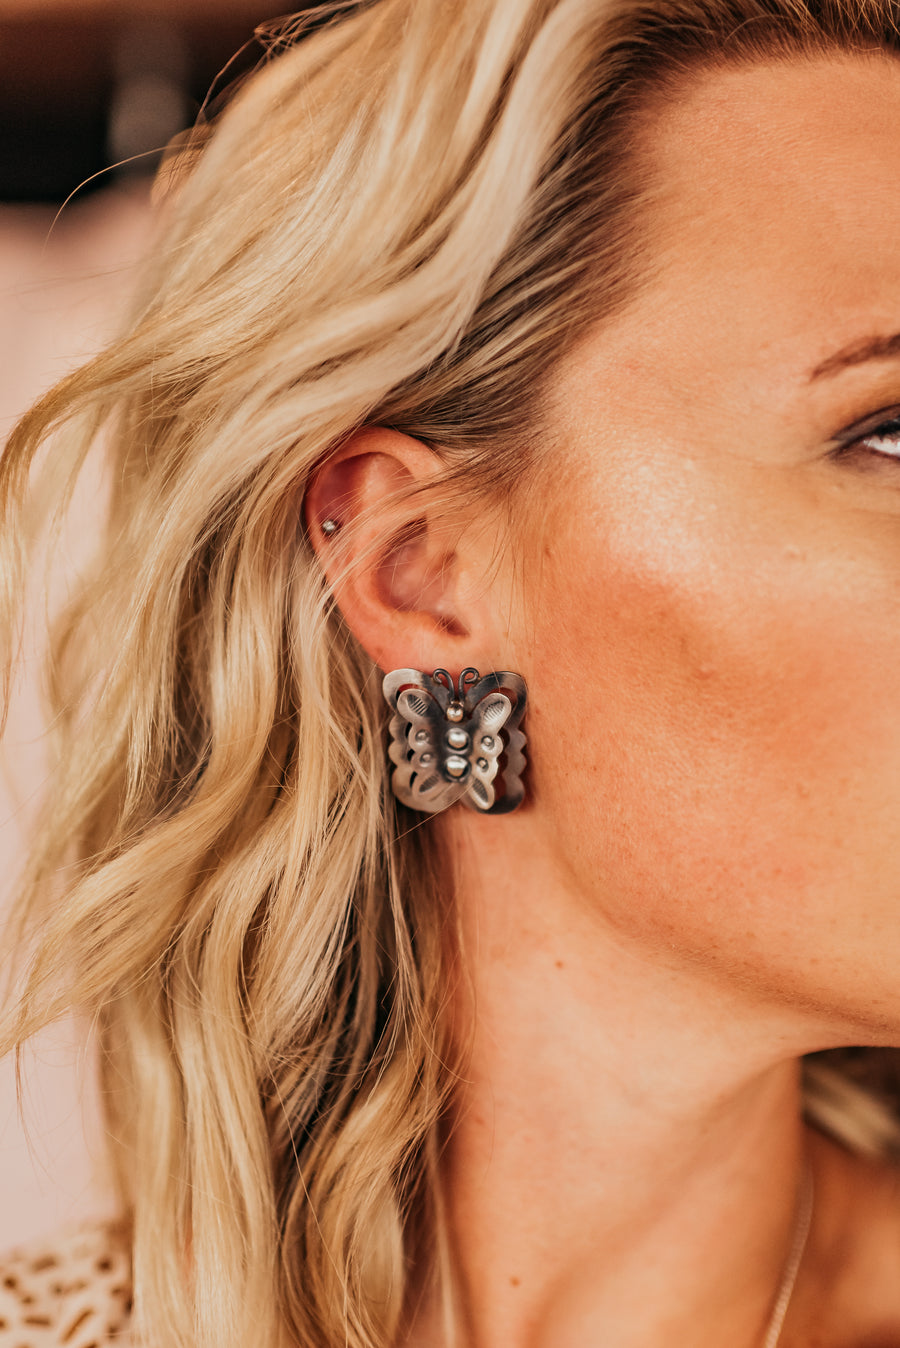 The Yara Earrings